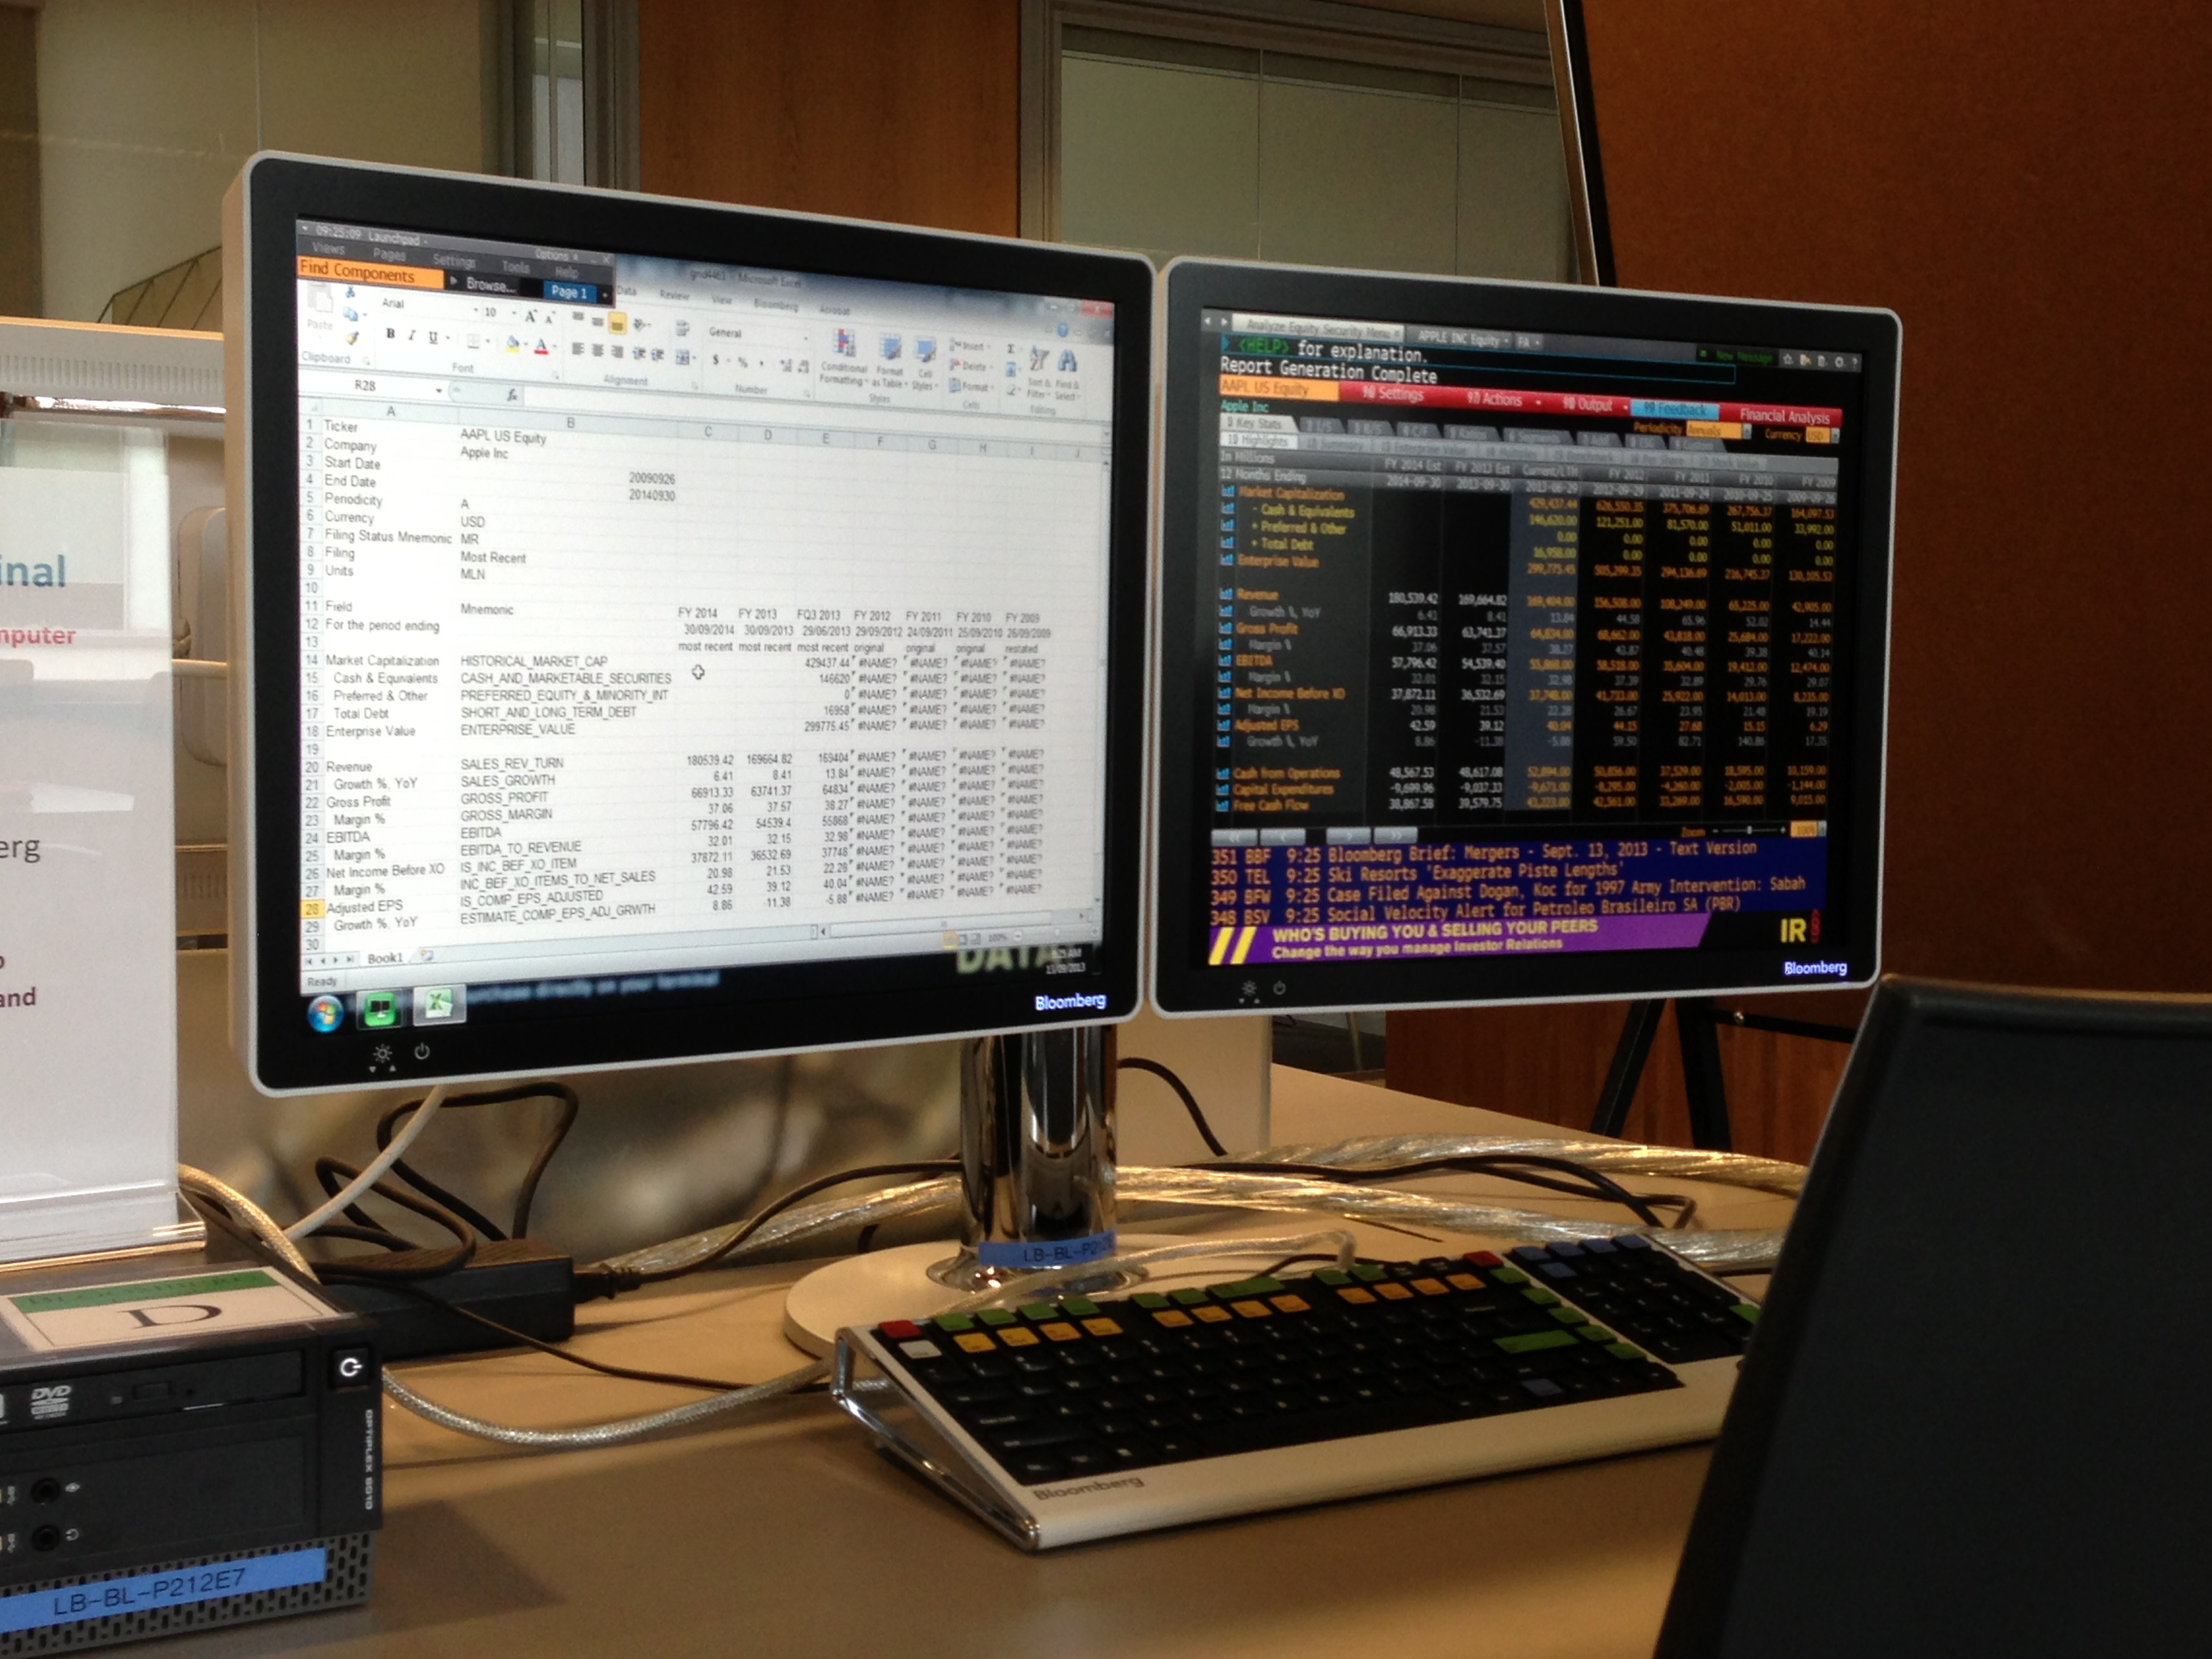 Bloomberg Quadrupled No Less Than Four Bloomberg Terminals Are Now